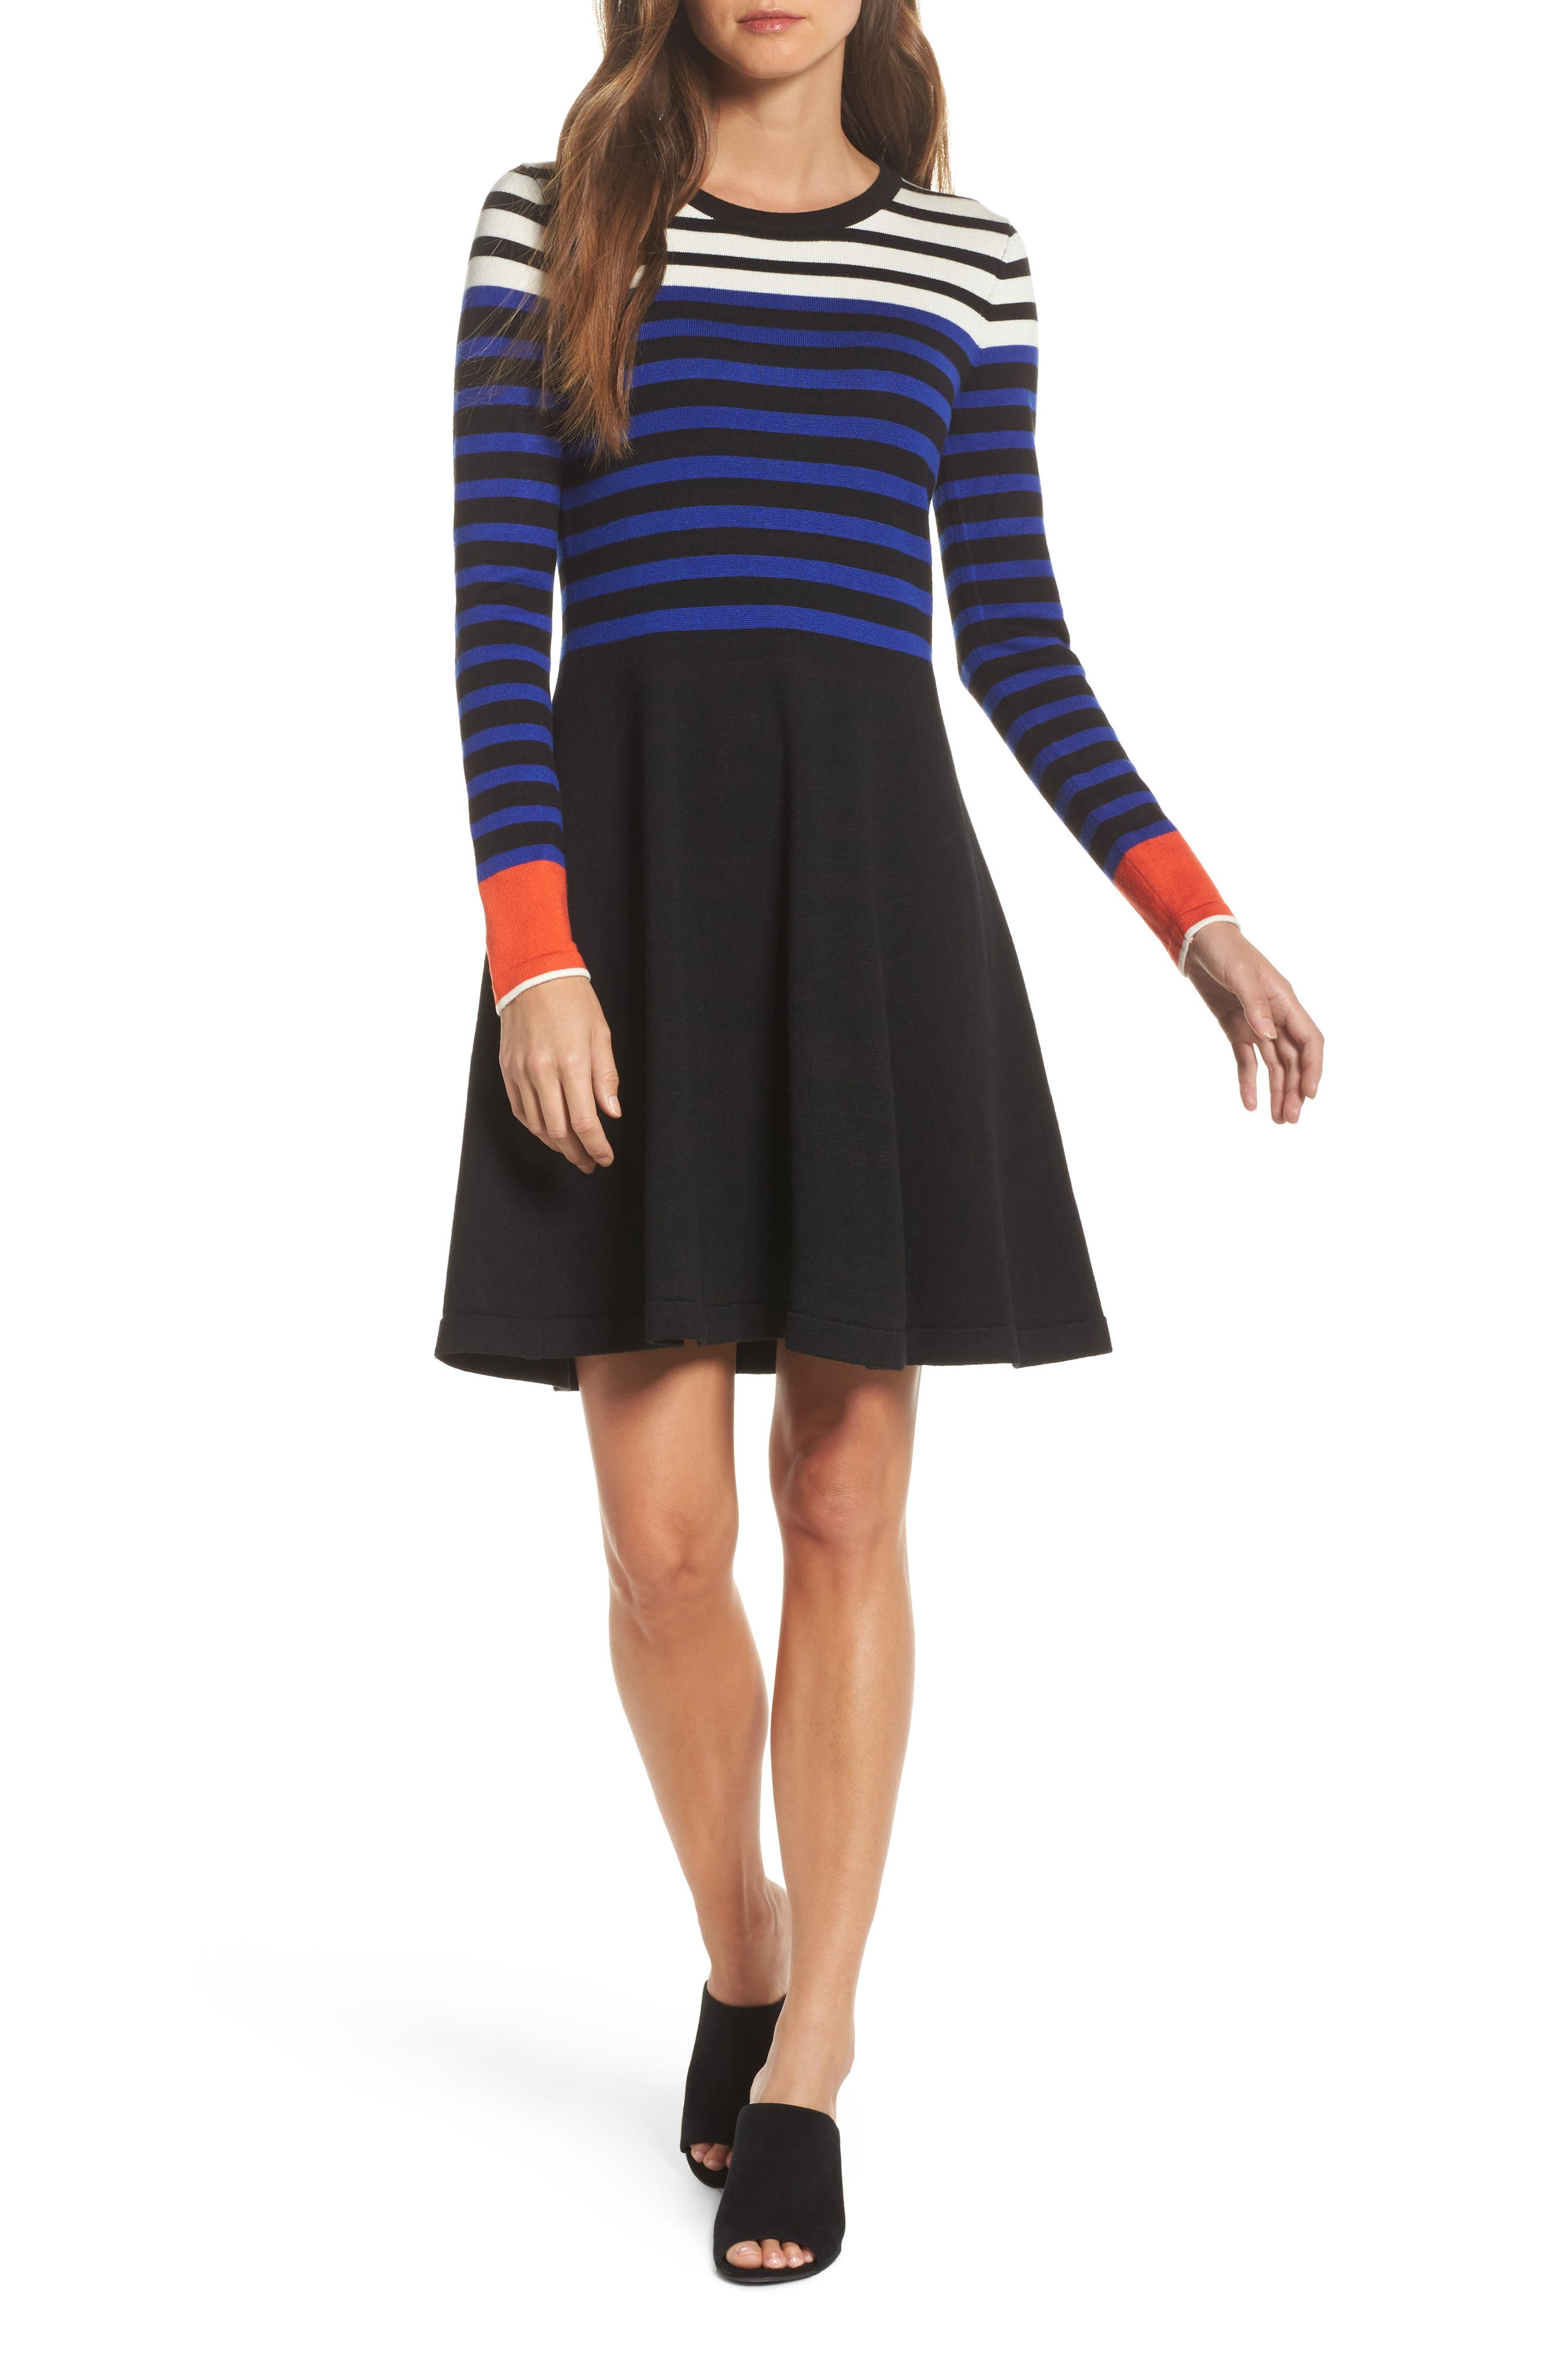 Alternate Image 1 Selected - Vince Camuto Stripe Sweater Fit & Flare Dress